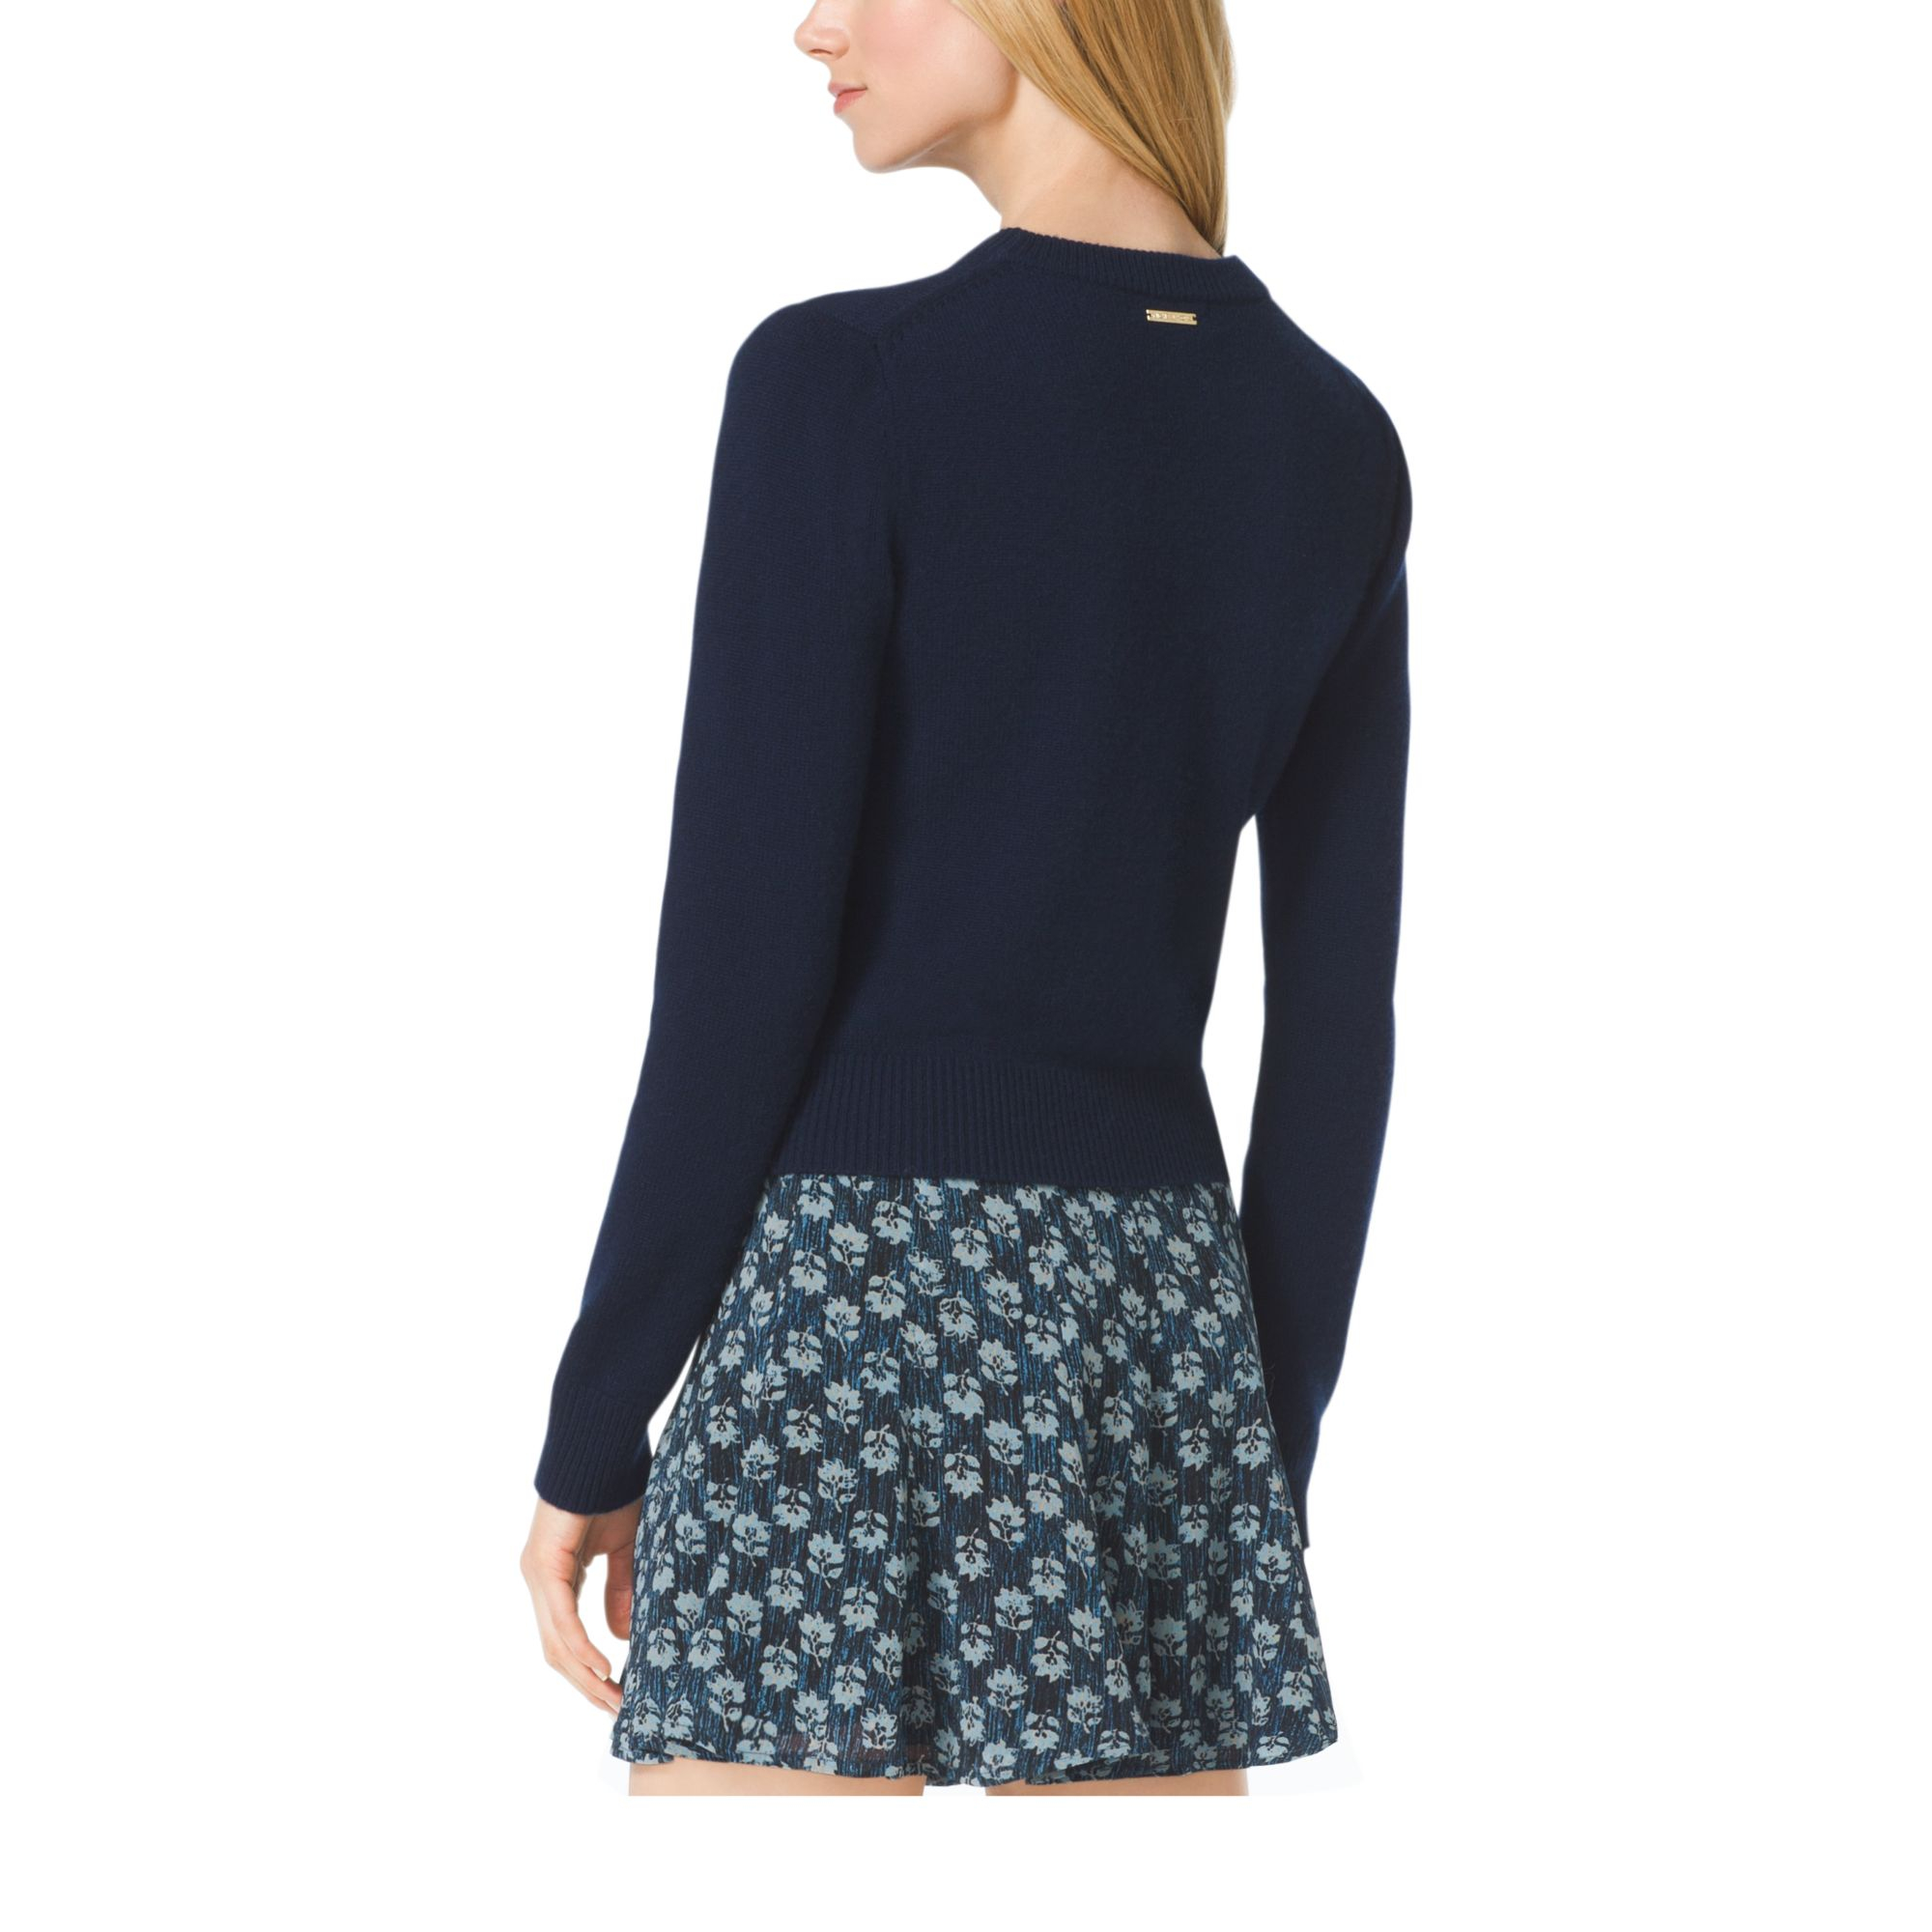 Michael kors Cropped Cashmere Sweater in Blue | Lyst